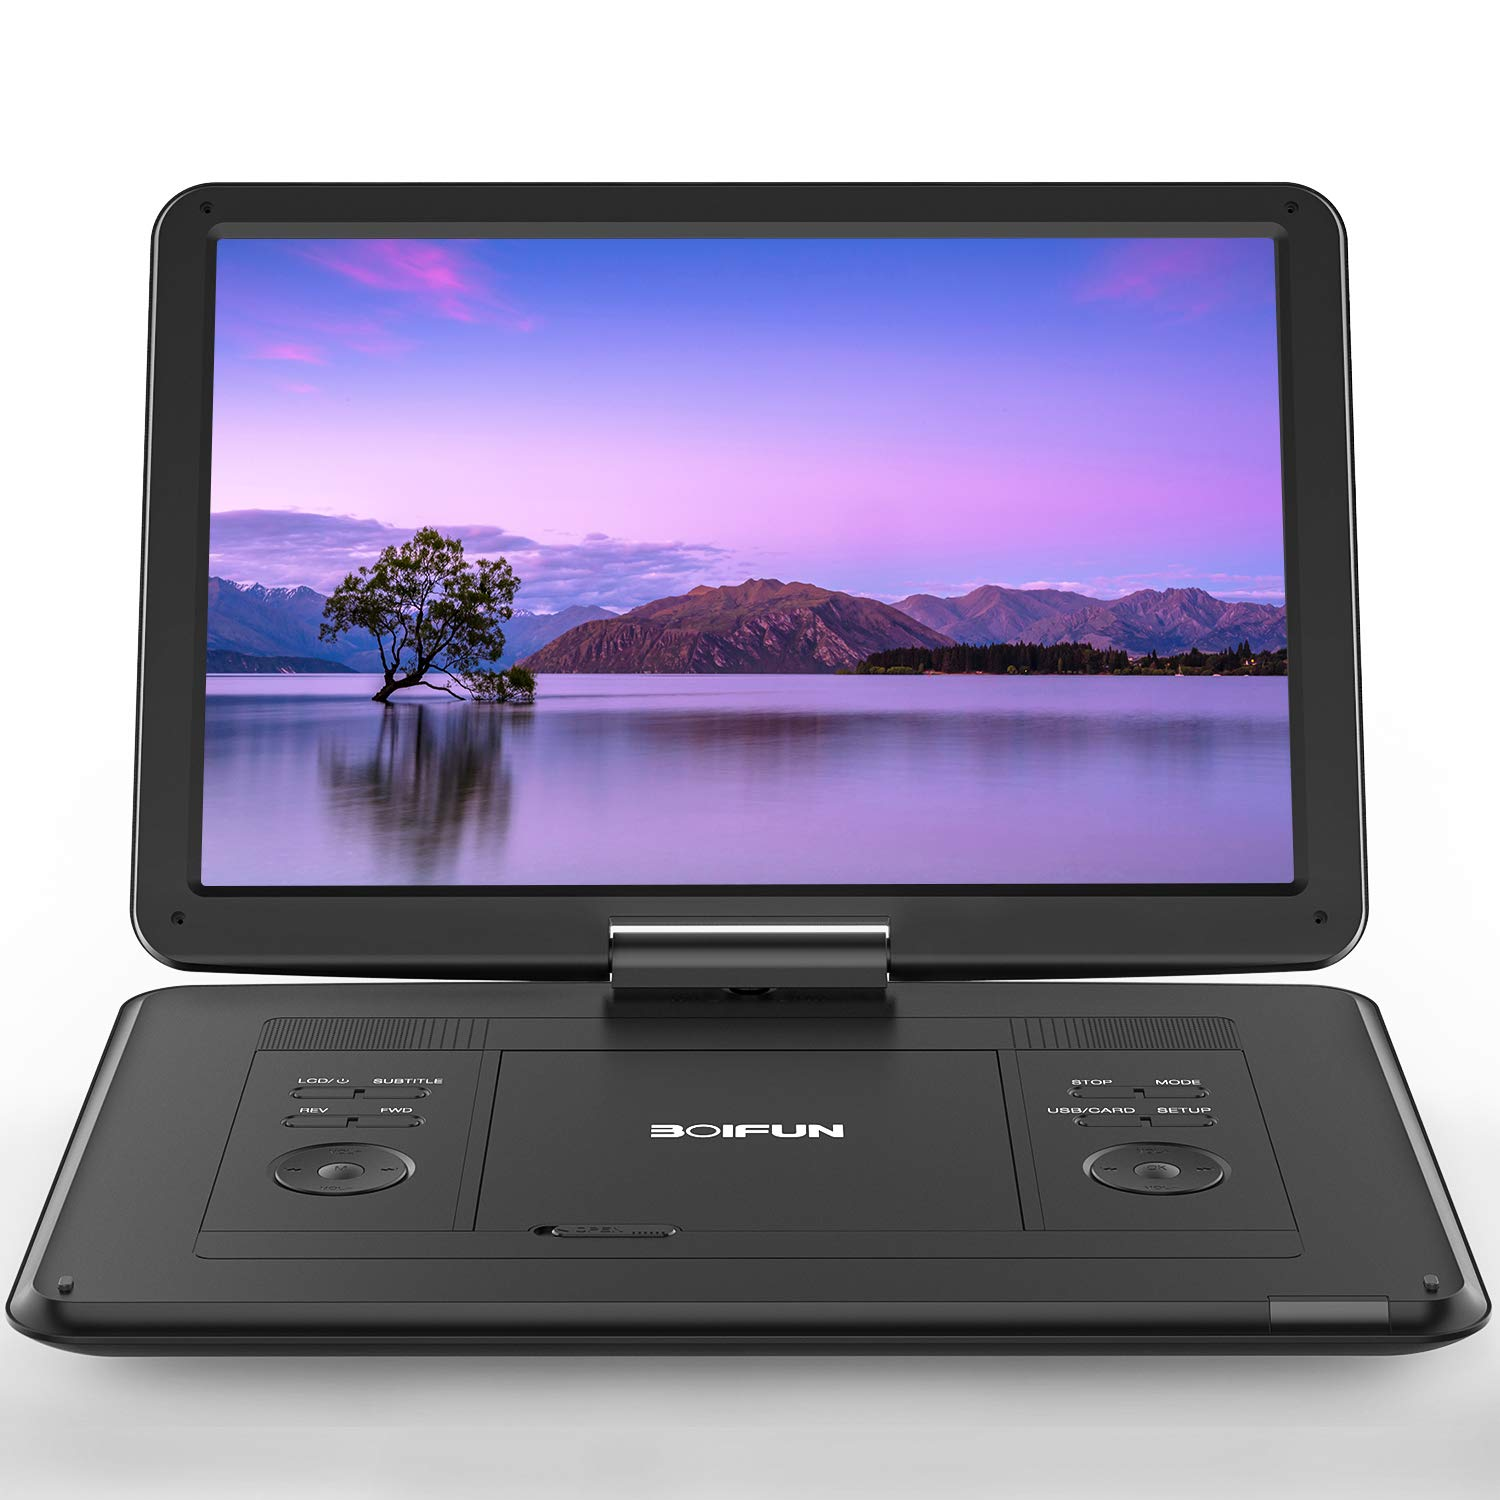 17.5'' Portable DVD Player with 15.6'' Large HD Screen, 6 Hours Rechargeable Battery, Support USB/SD Card/Sync TV and Multiple Disc Formats, High Volume Speaker, Black by BOIFUN